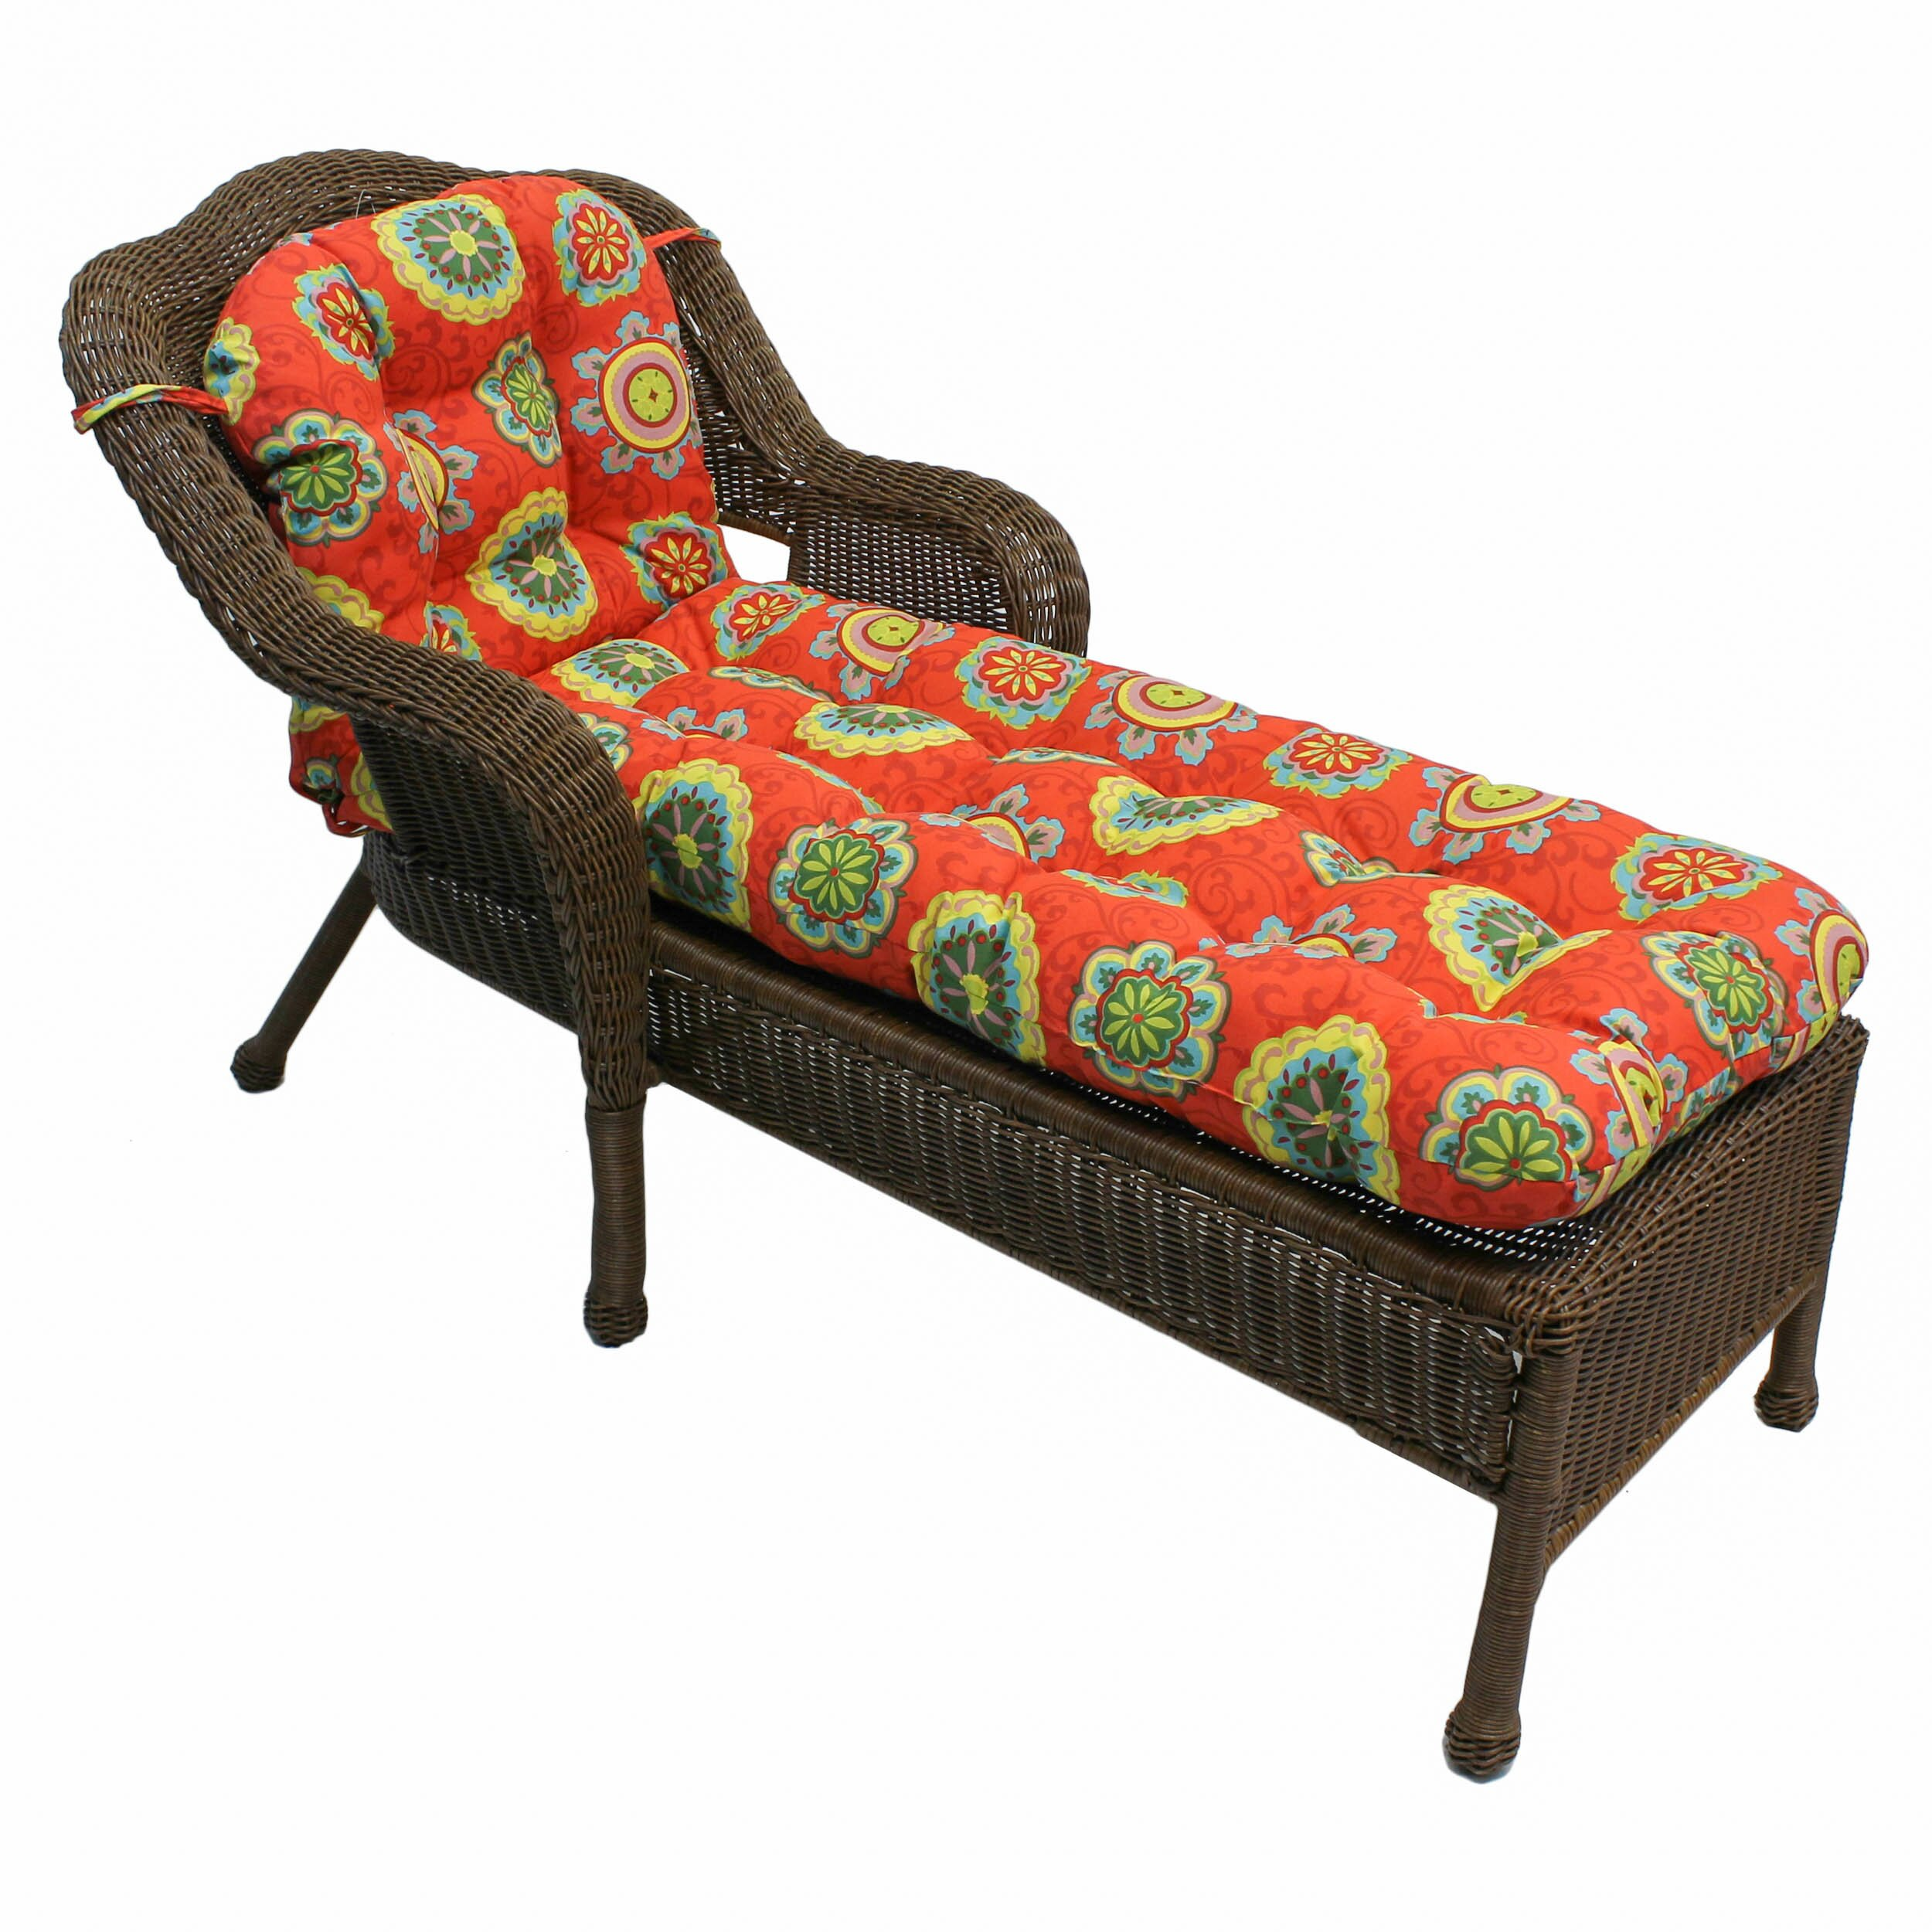 Blazing Needles Outdoor Chaise Lounge Cushion & Reviews